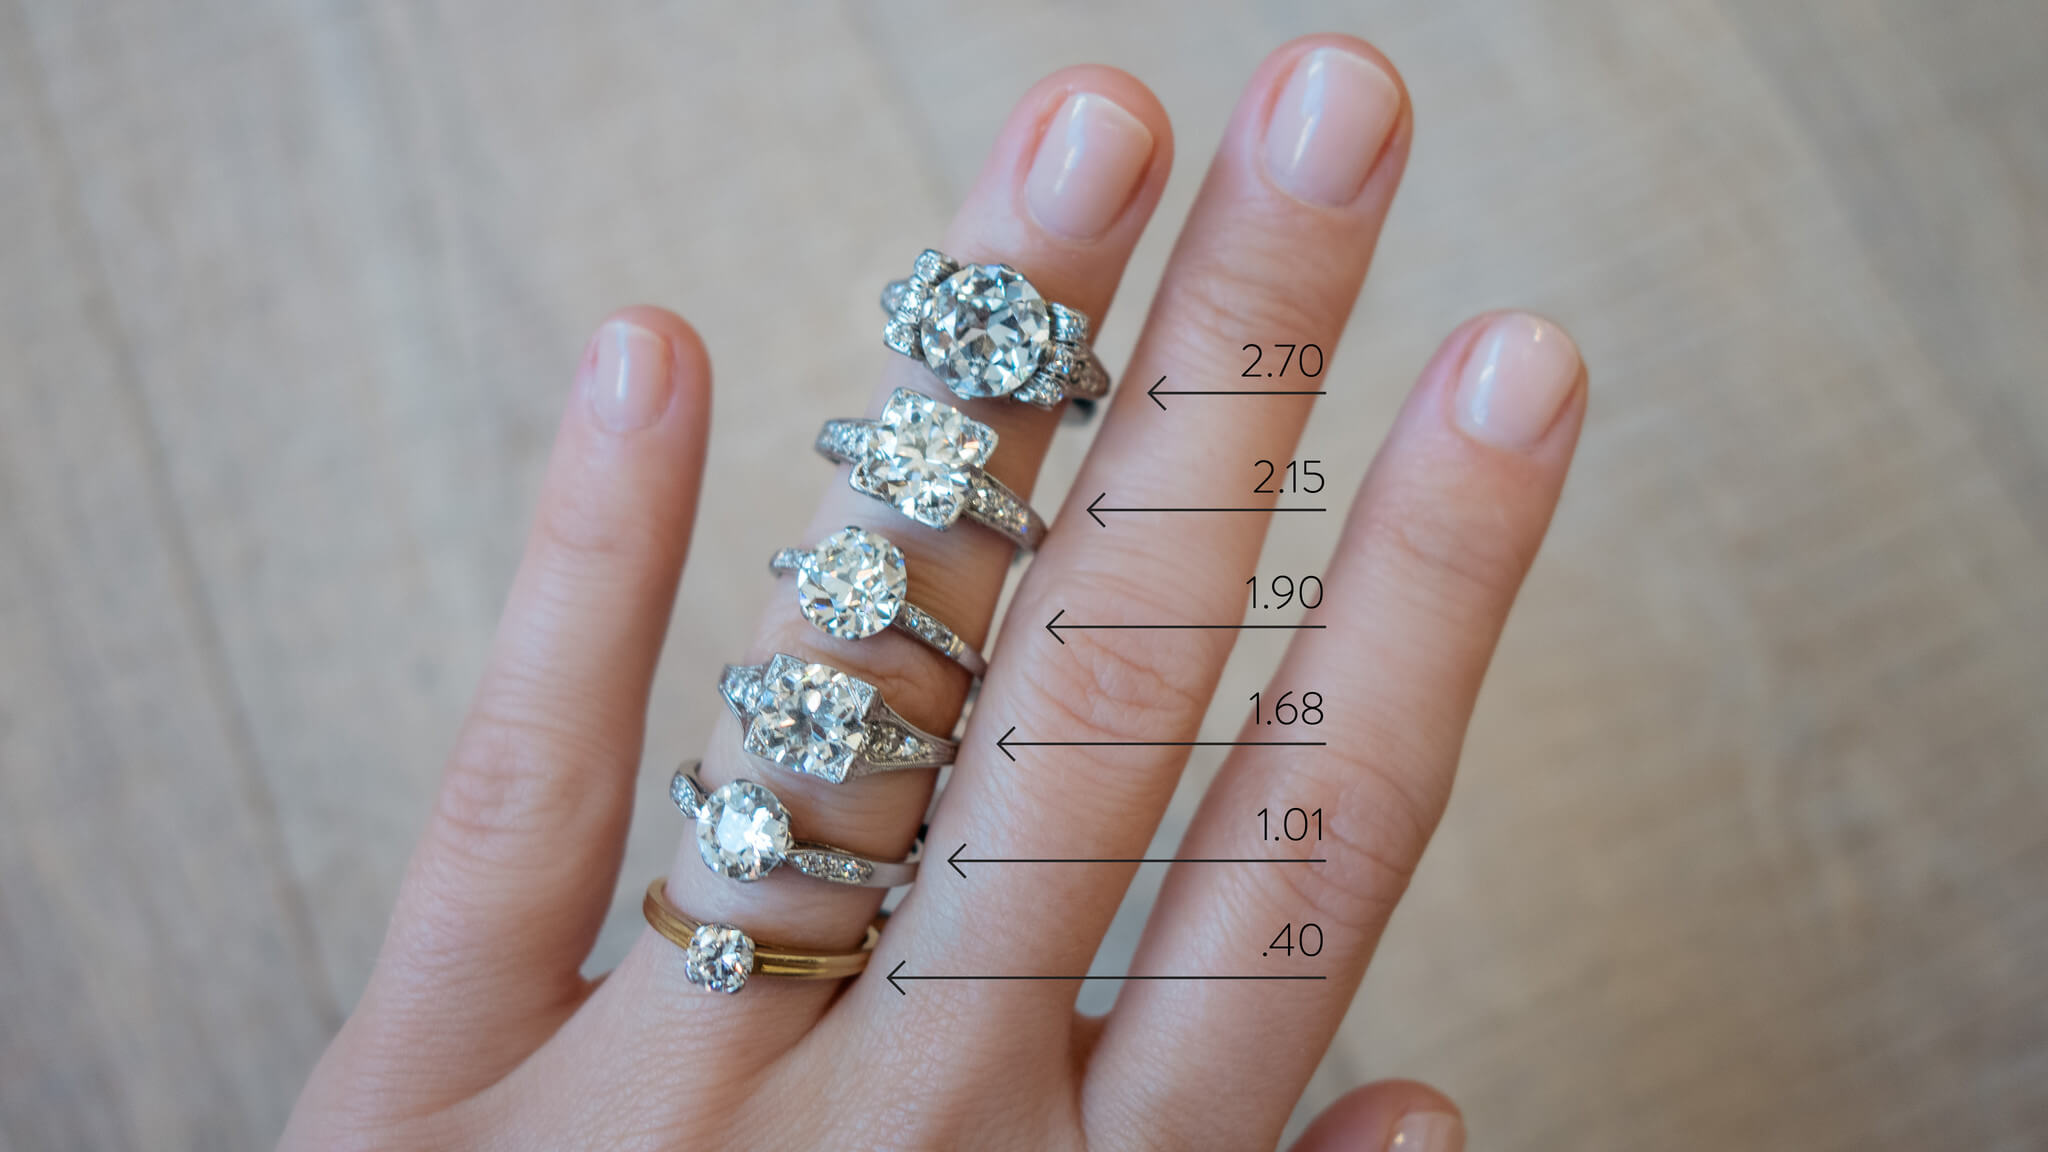 A 0 25 Carat Diamond Is The Same As Points Or 1 4 Often Confused With Size Even Though It Actually Measure Of Weight